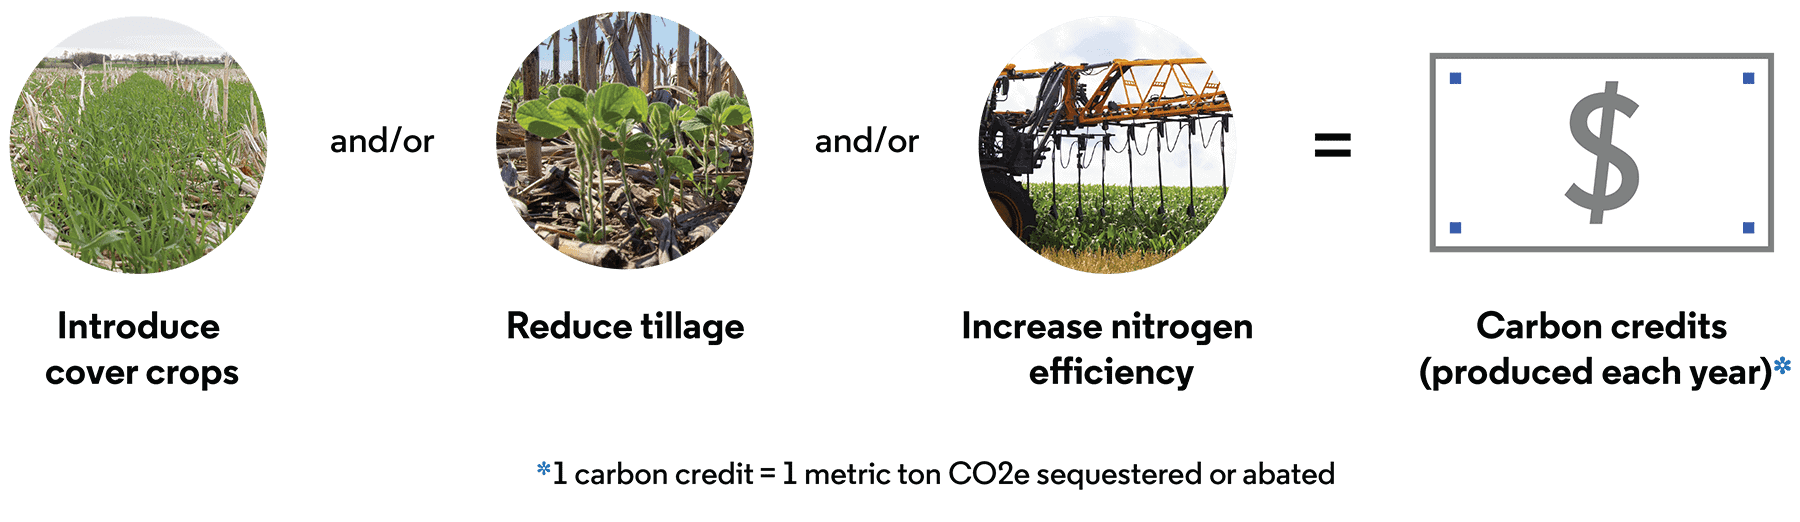 Introduce cover crops and/or reduce tillage and/or increase nitrogen efficiency equals Carbon credits (produced each year). 1 carbon credit equals 1 metric ton CO2e sequestered or abated